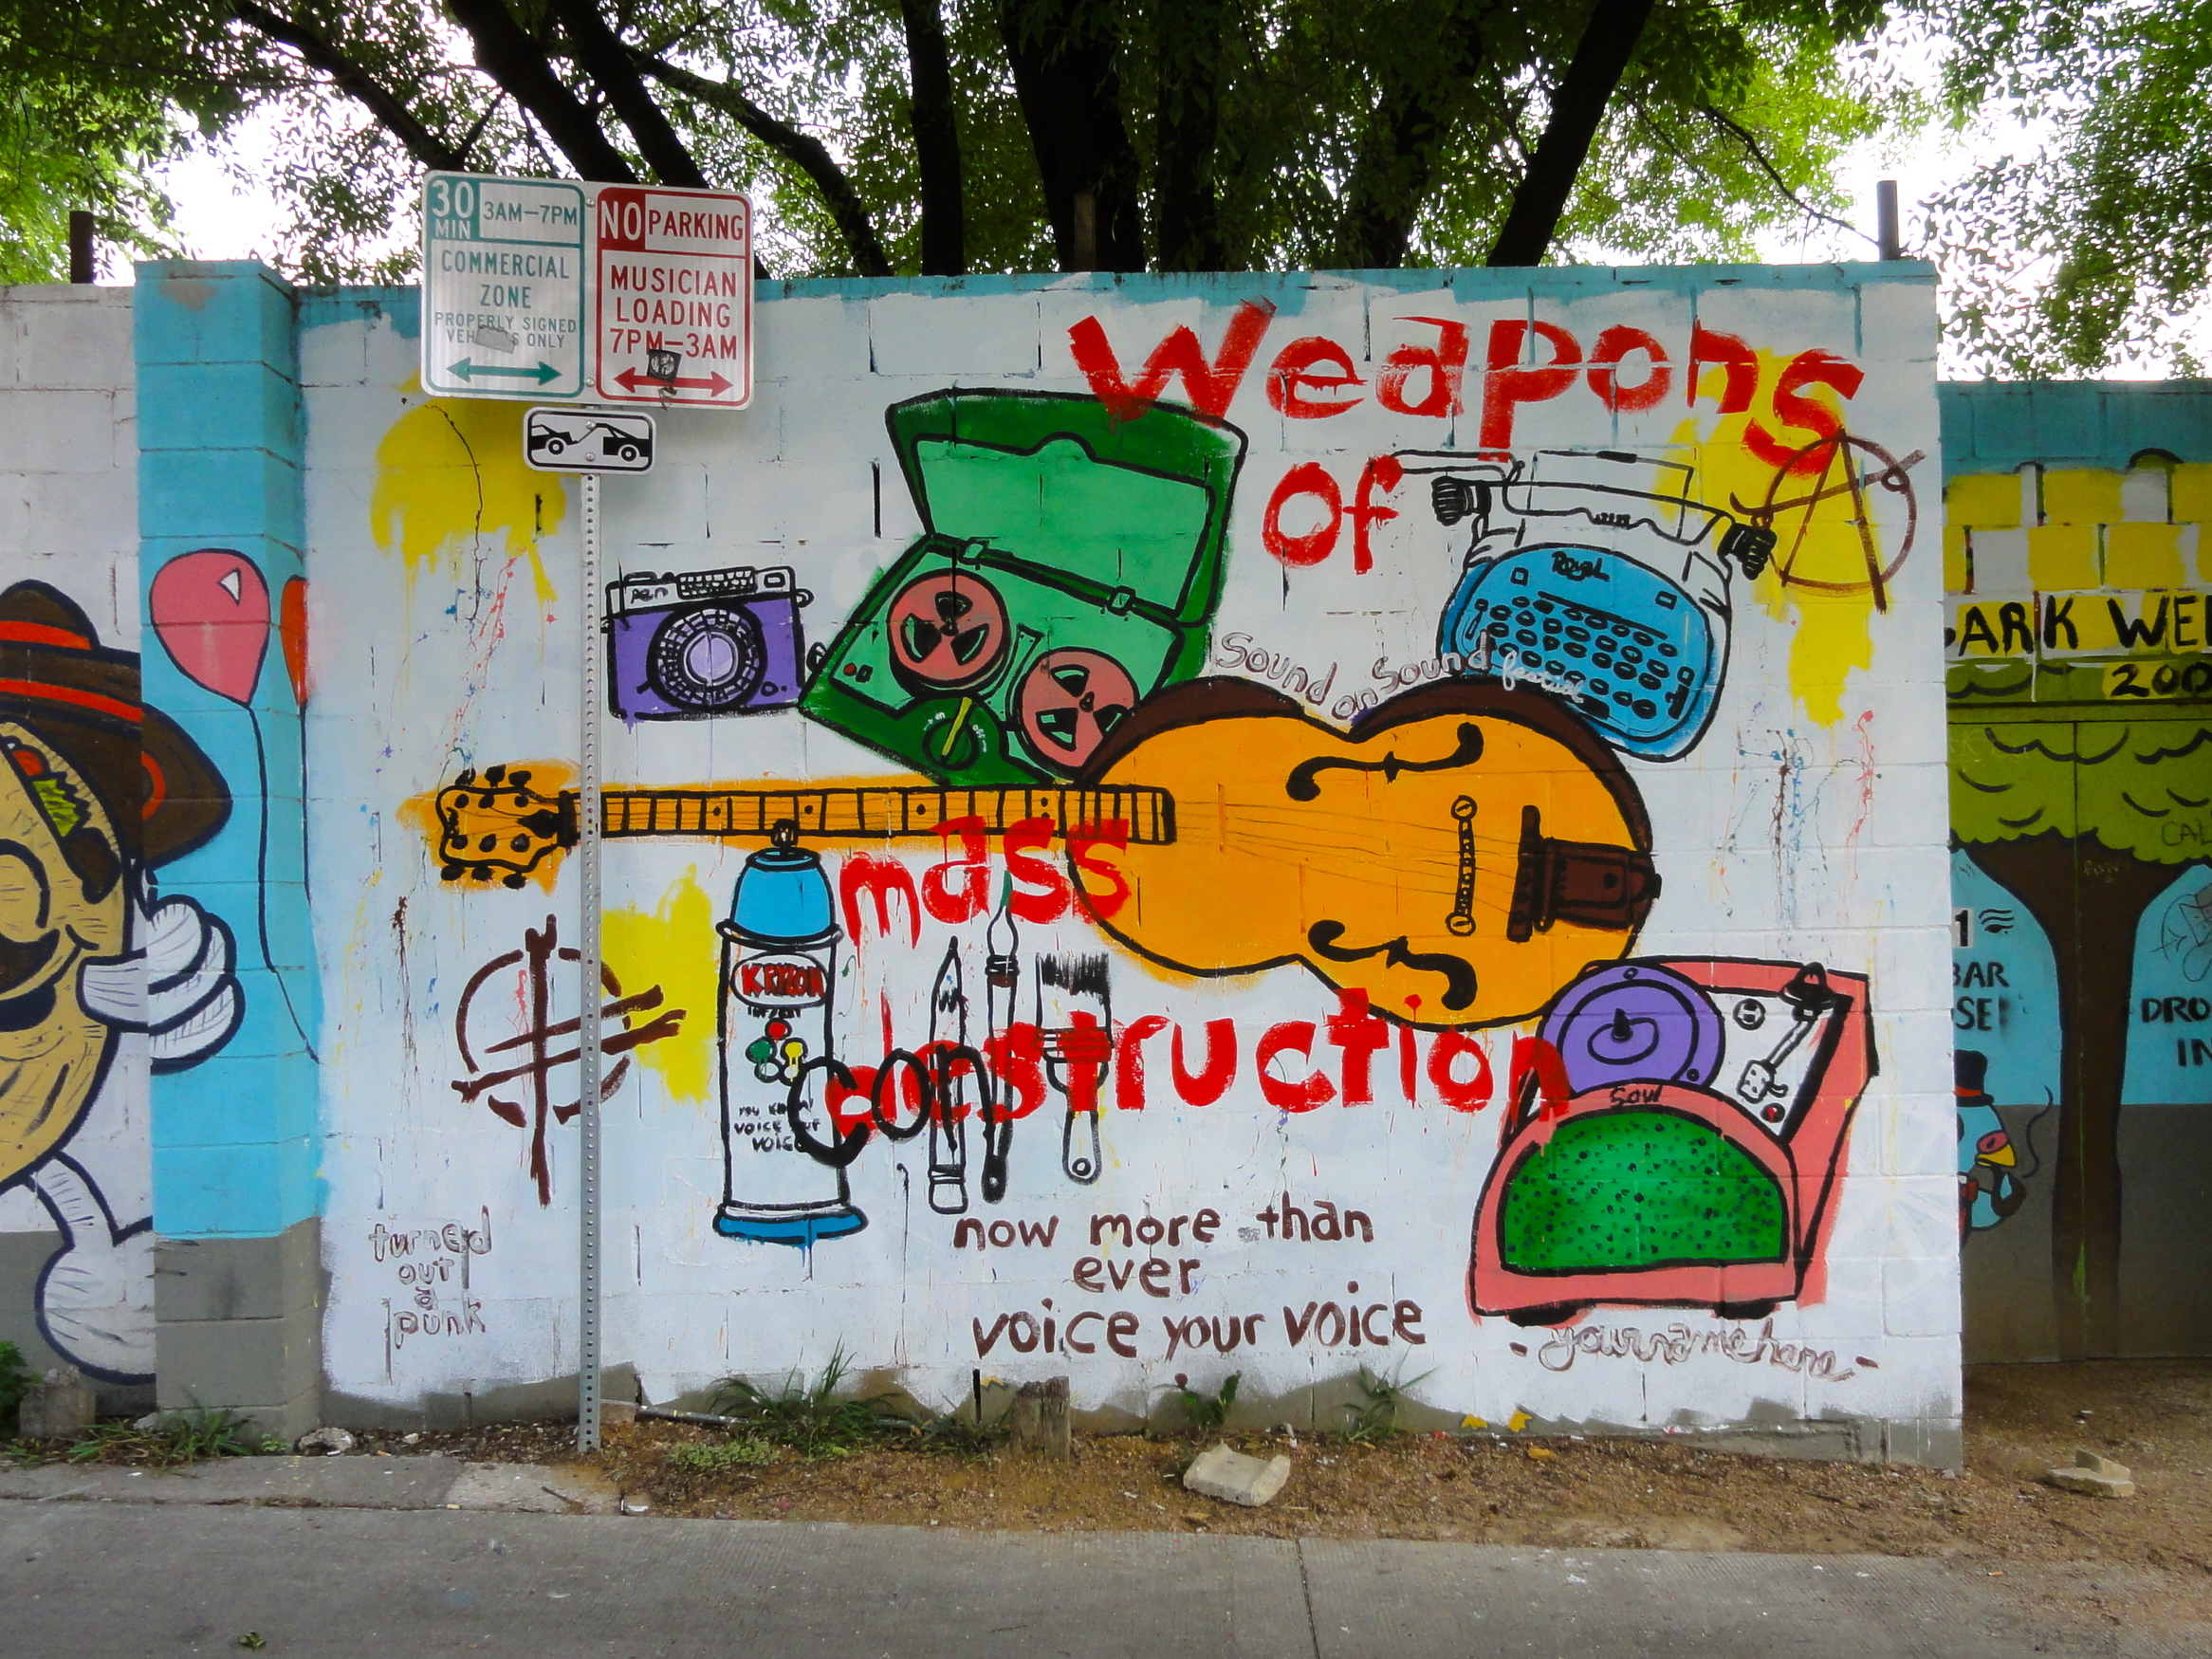 Weapons of Destruction Mural